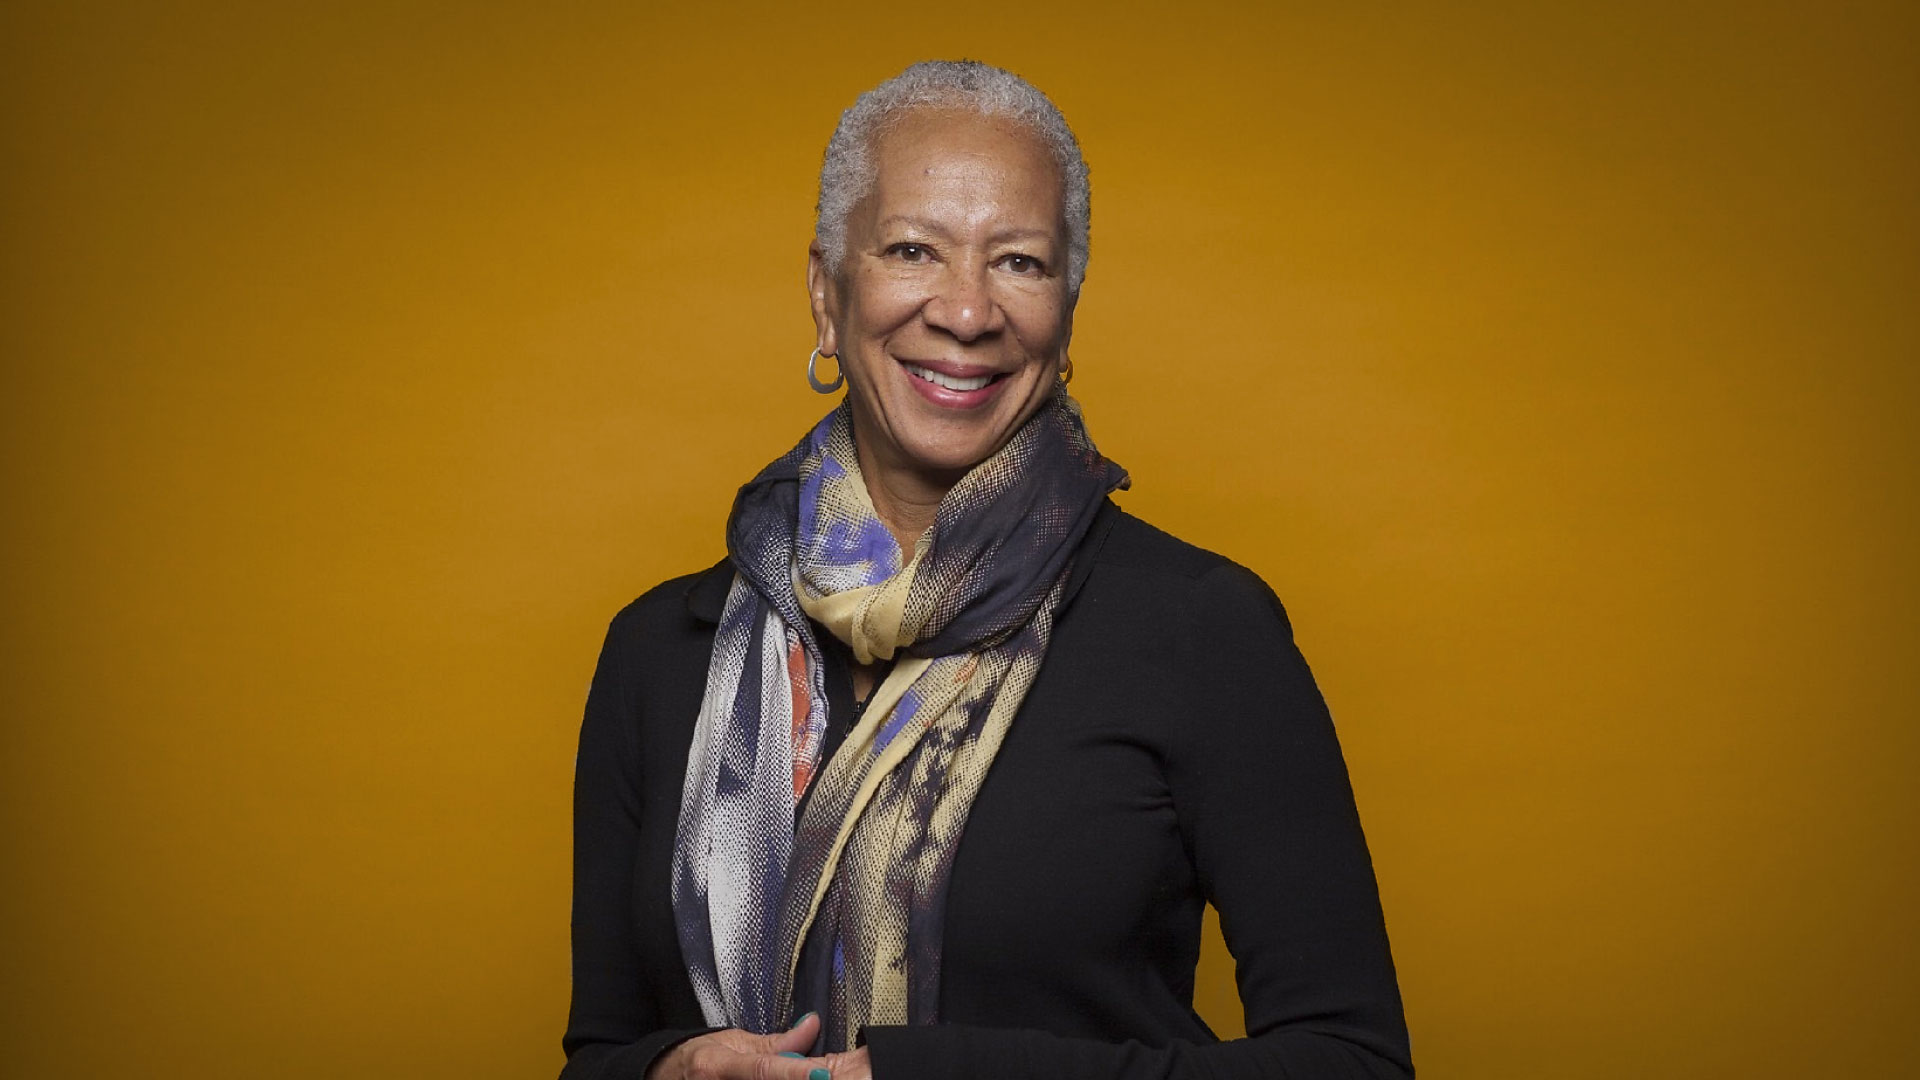 Unfinished Welcomes Angela Glover Blackwell As Network Chairperson